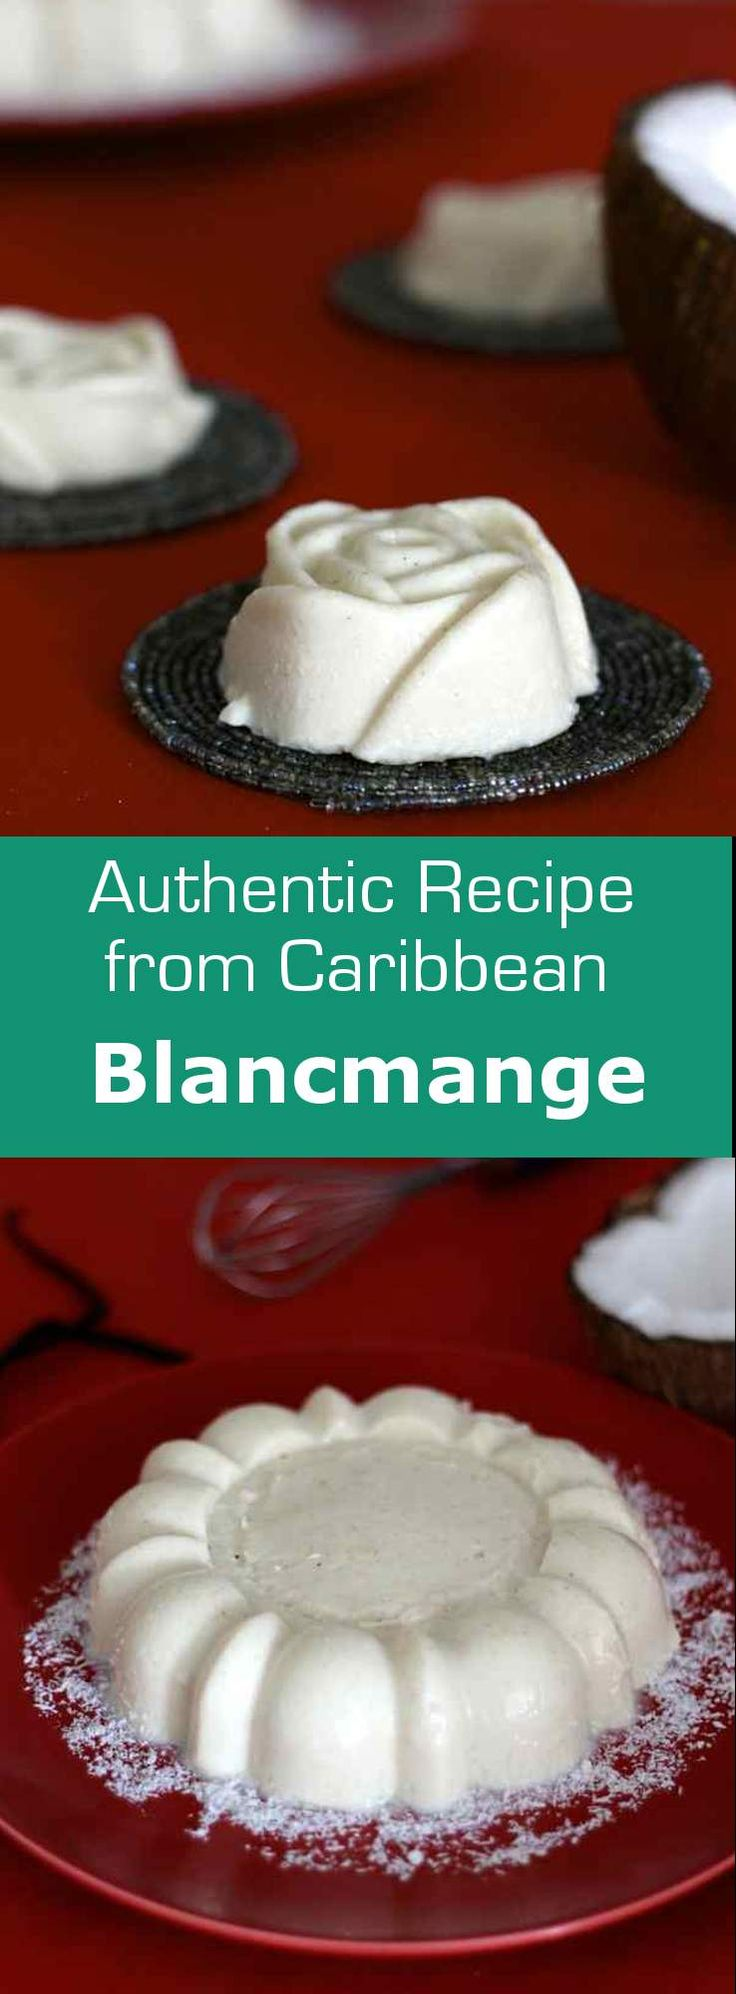 Blancmange, a dessert born in the Middle Ages that traveled extensively over the centuries, is now a classic recipe in the French West Indies. #caribbean #antilles #westindies #dessert